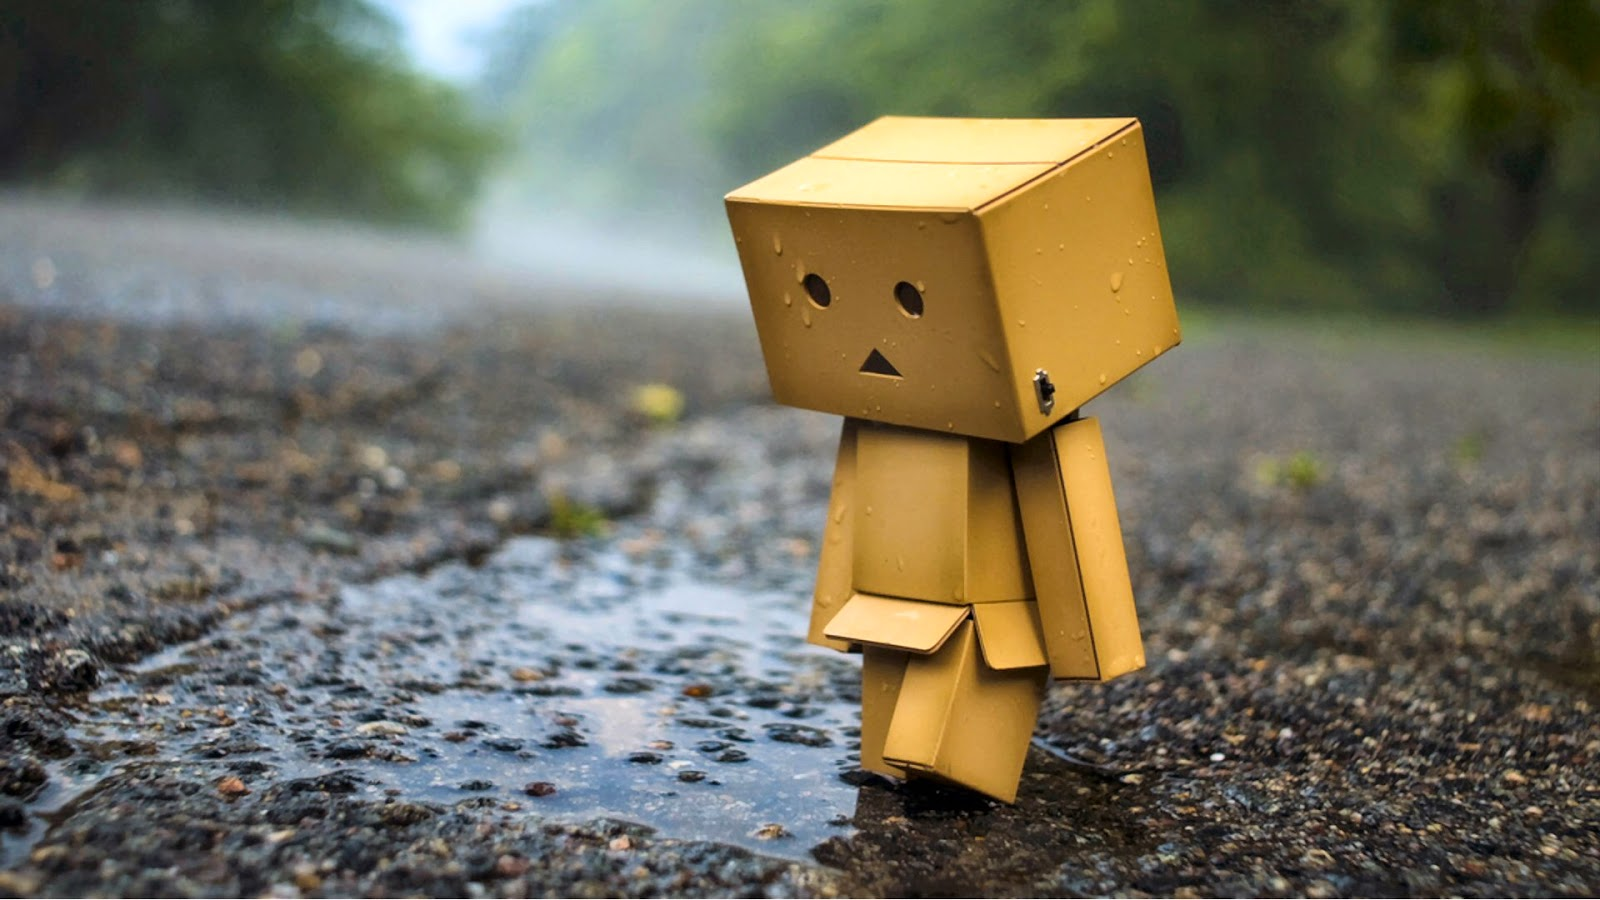 Wallpaper Danbo Sedih